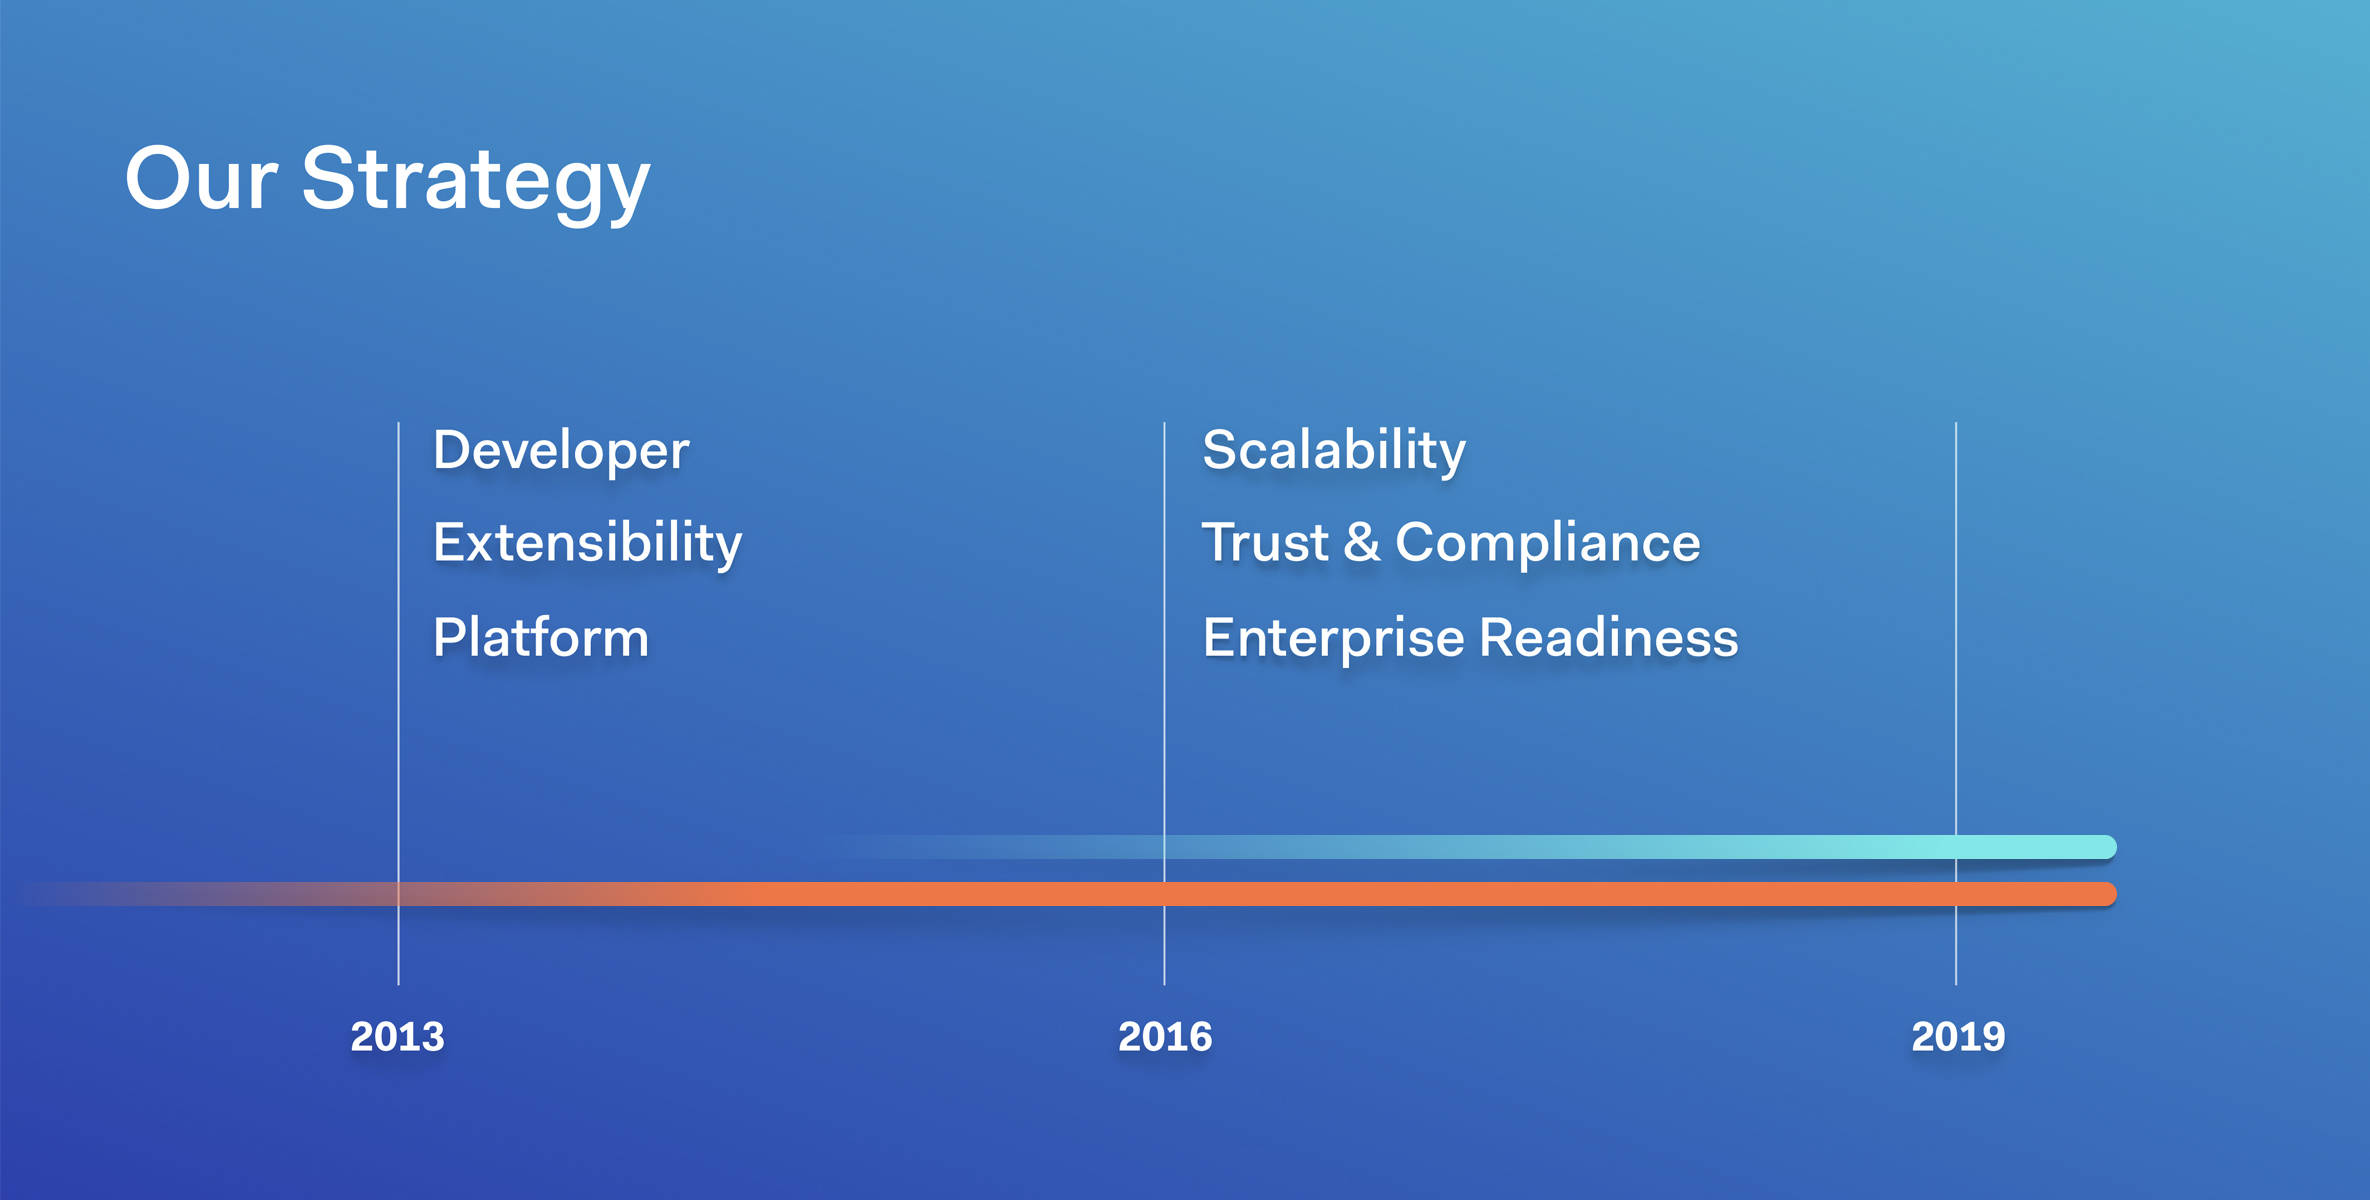 Auth0 is also focused on scalability, trustworthiness, and enterprises.